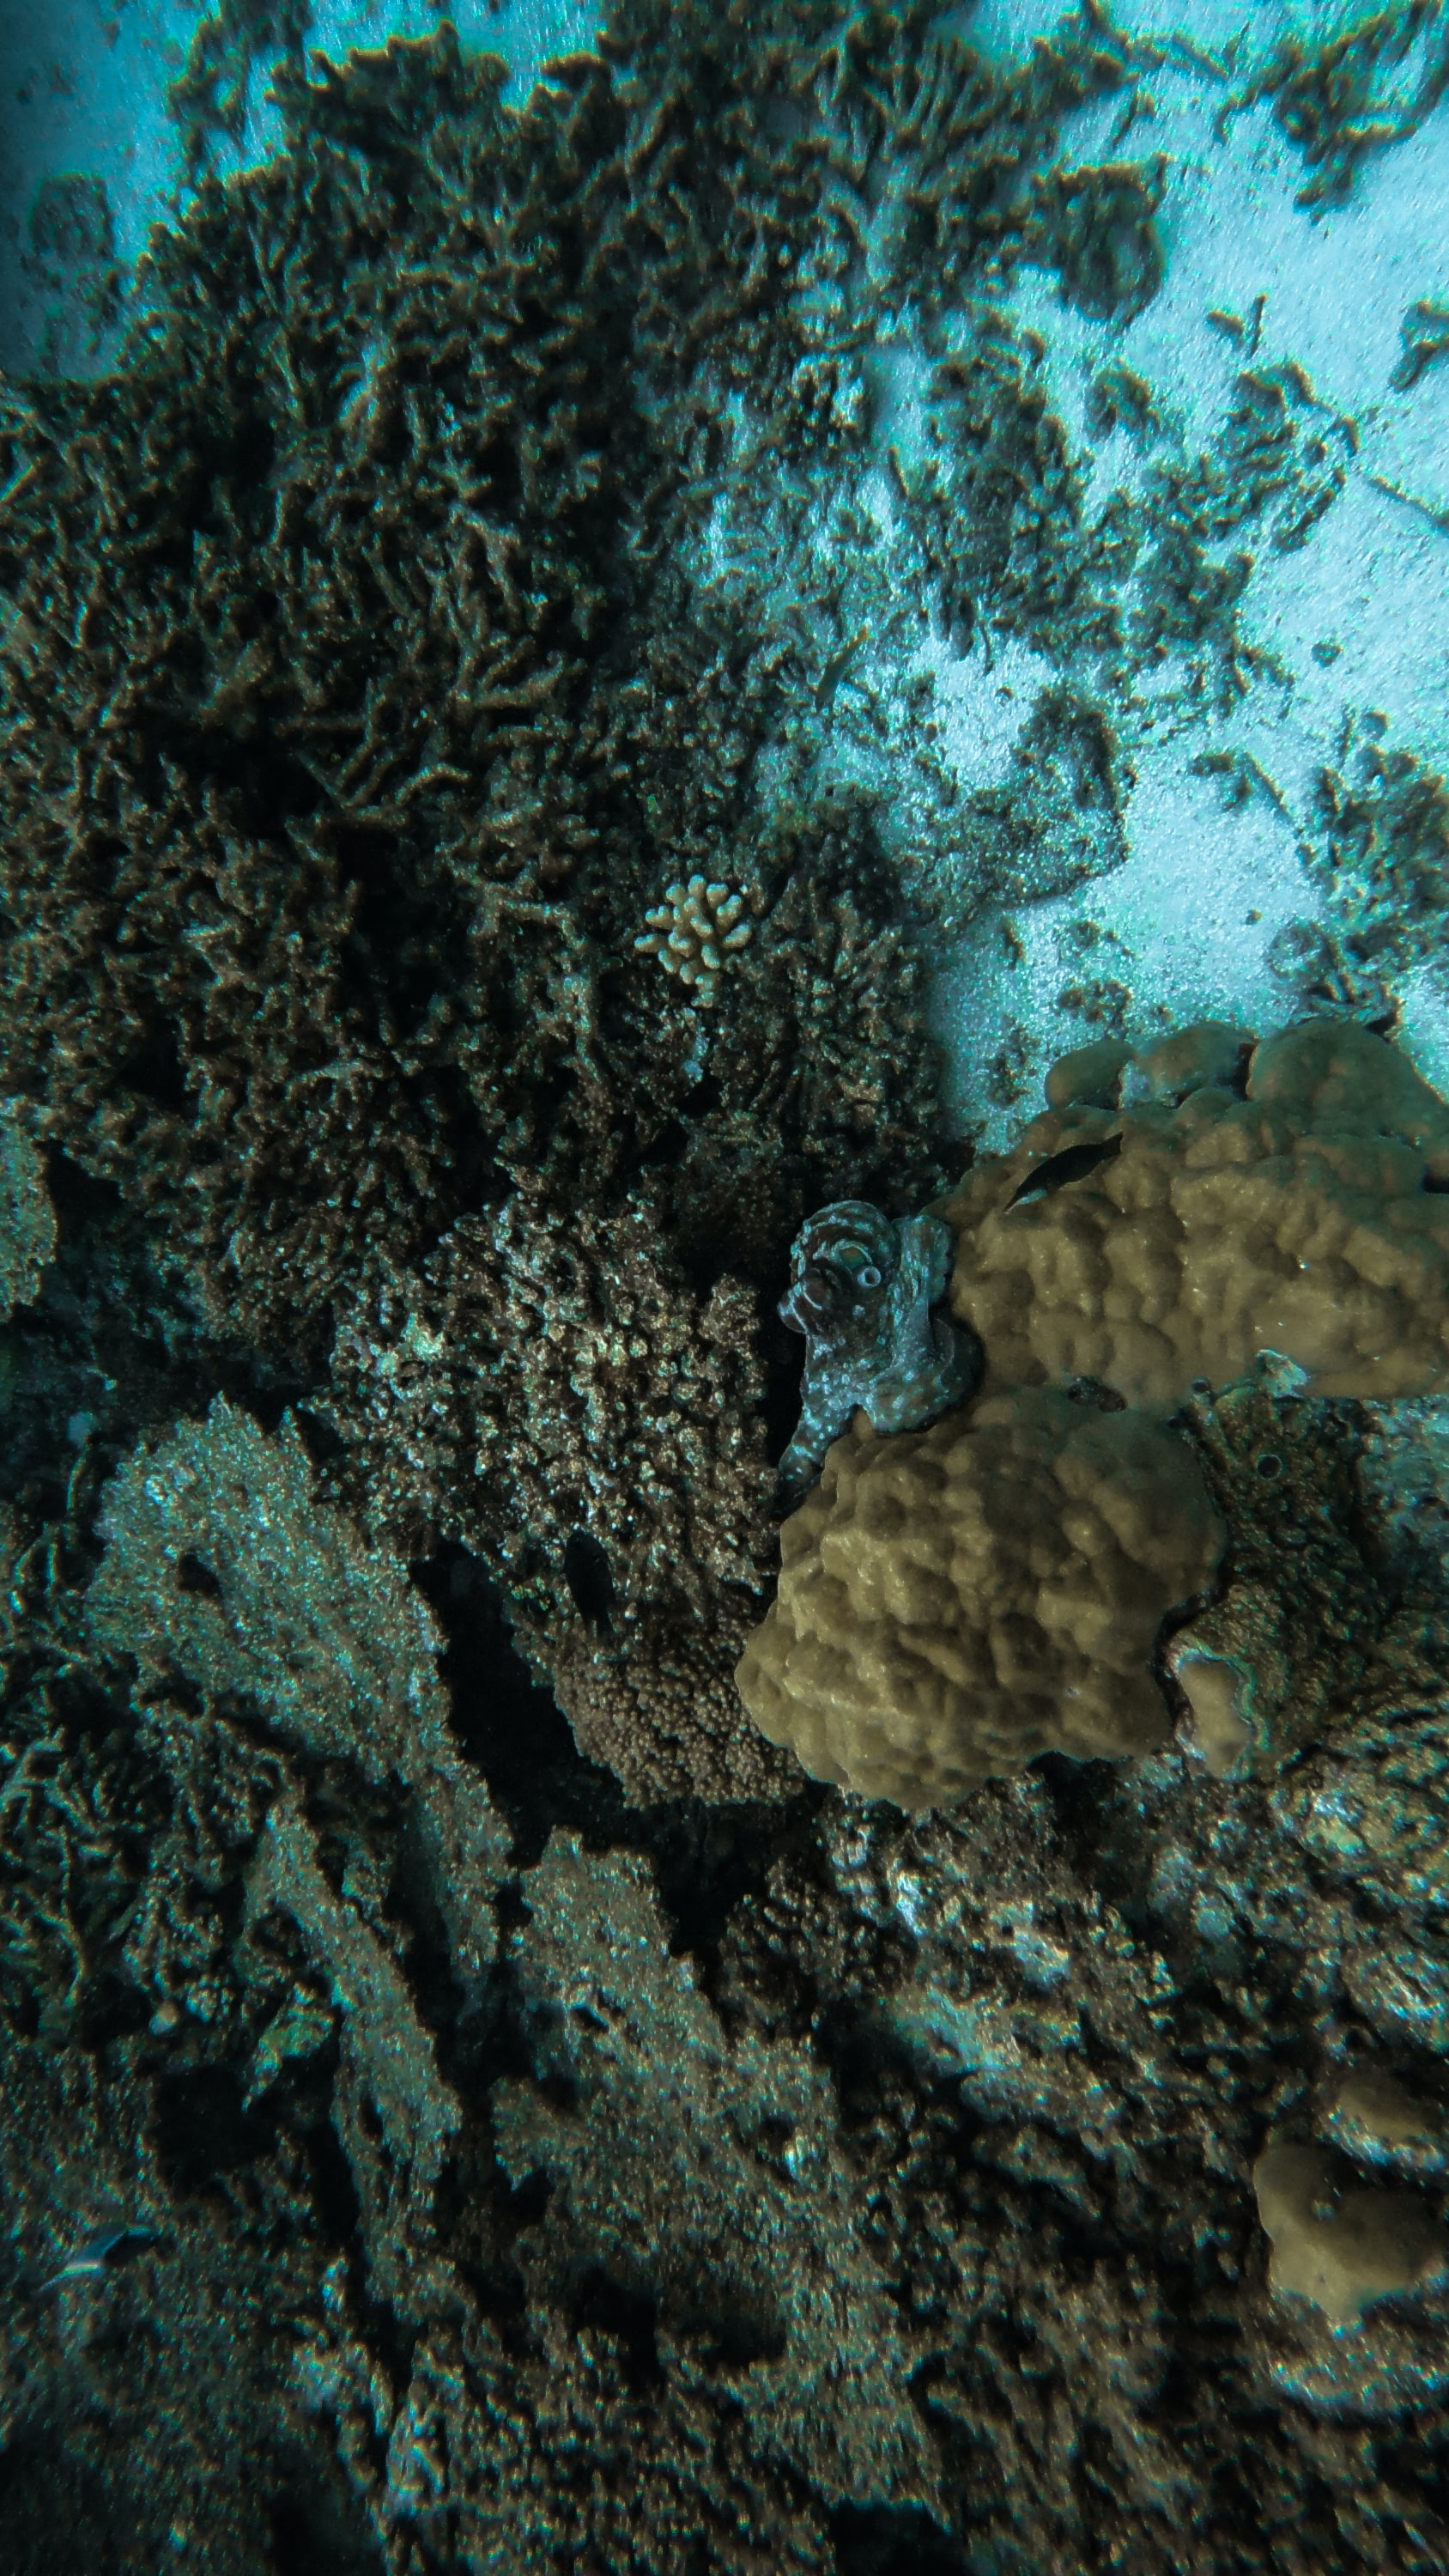 58651 download wallpaper Nature, Octopus, Seaweed, Algae, Underwater World, Coral screensavers and pictures for free